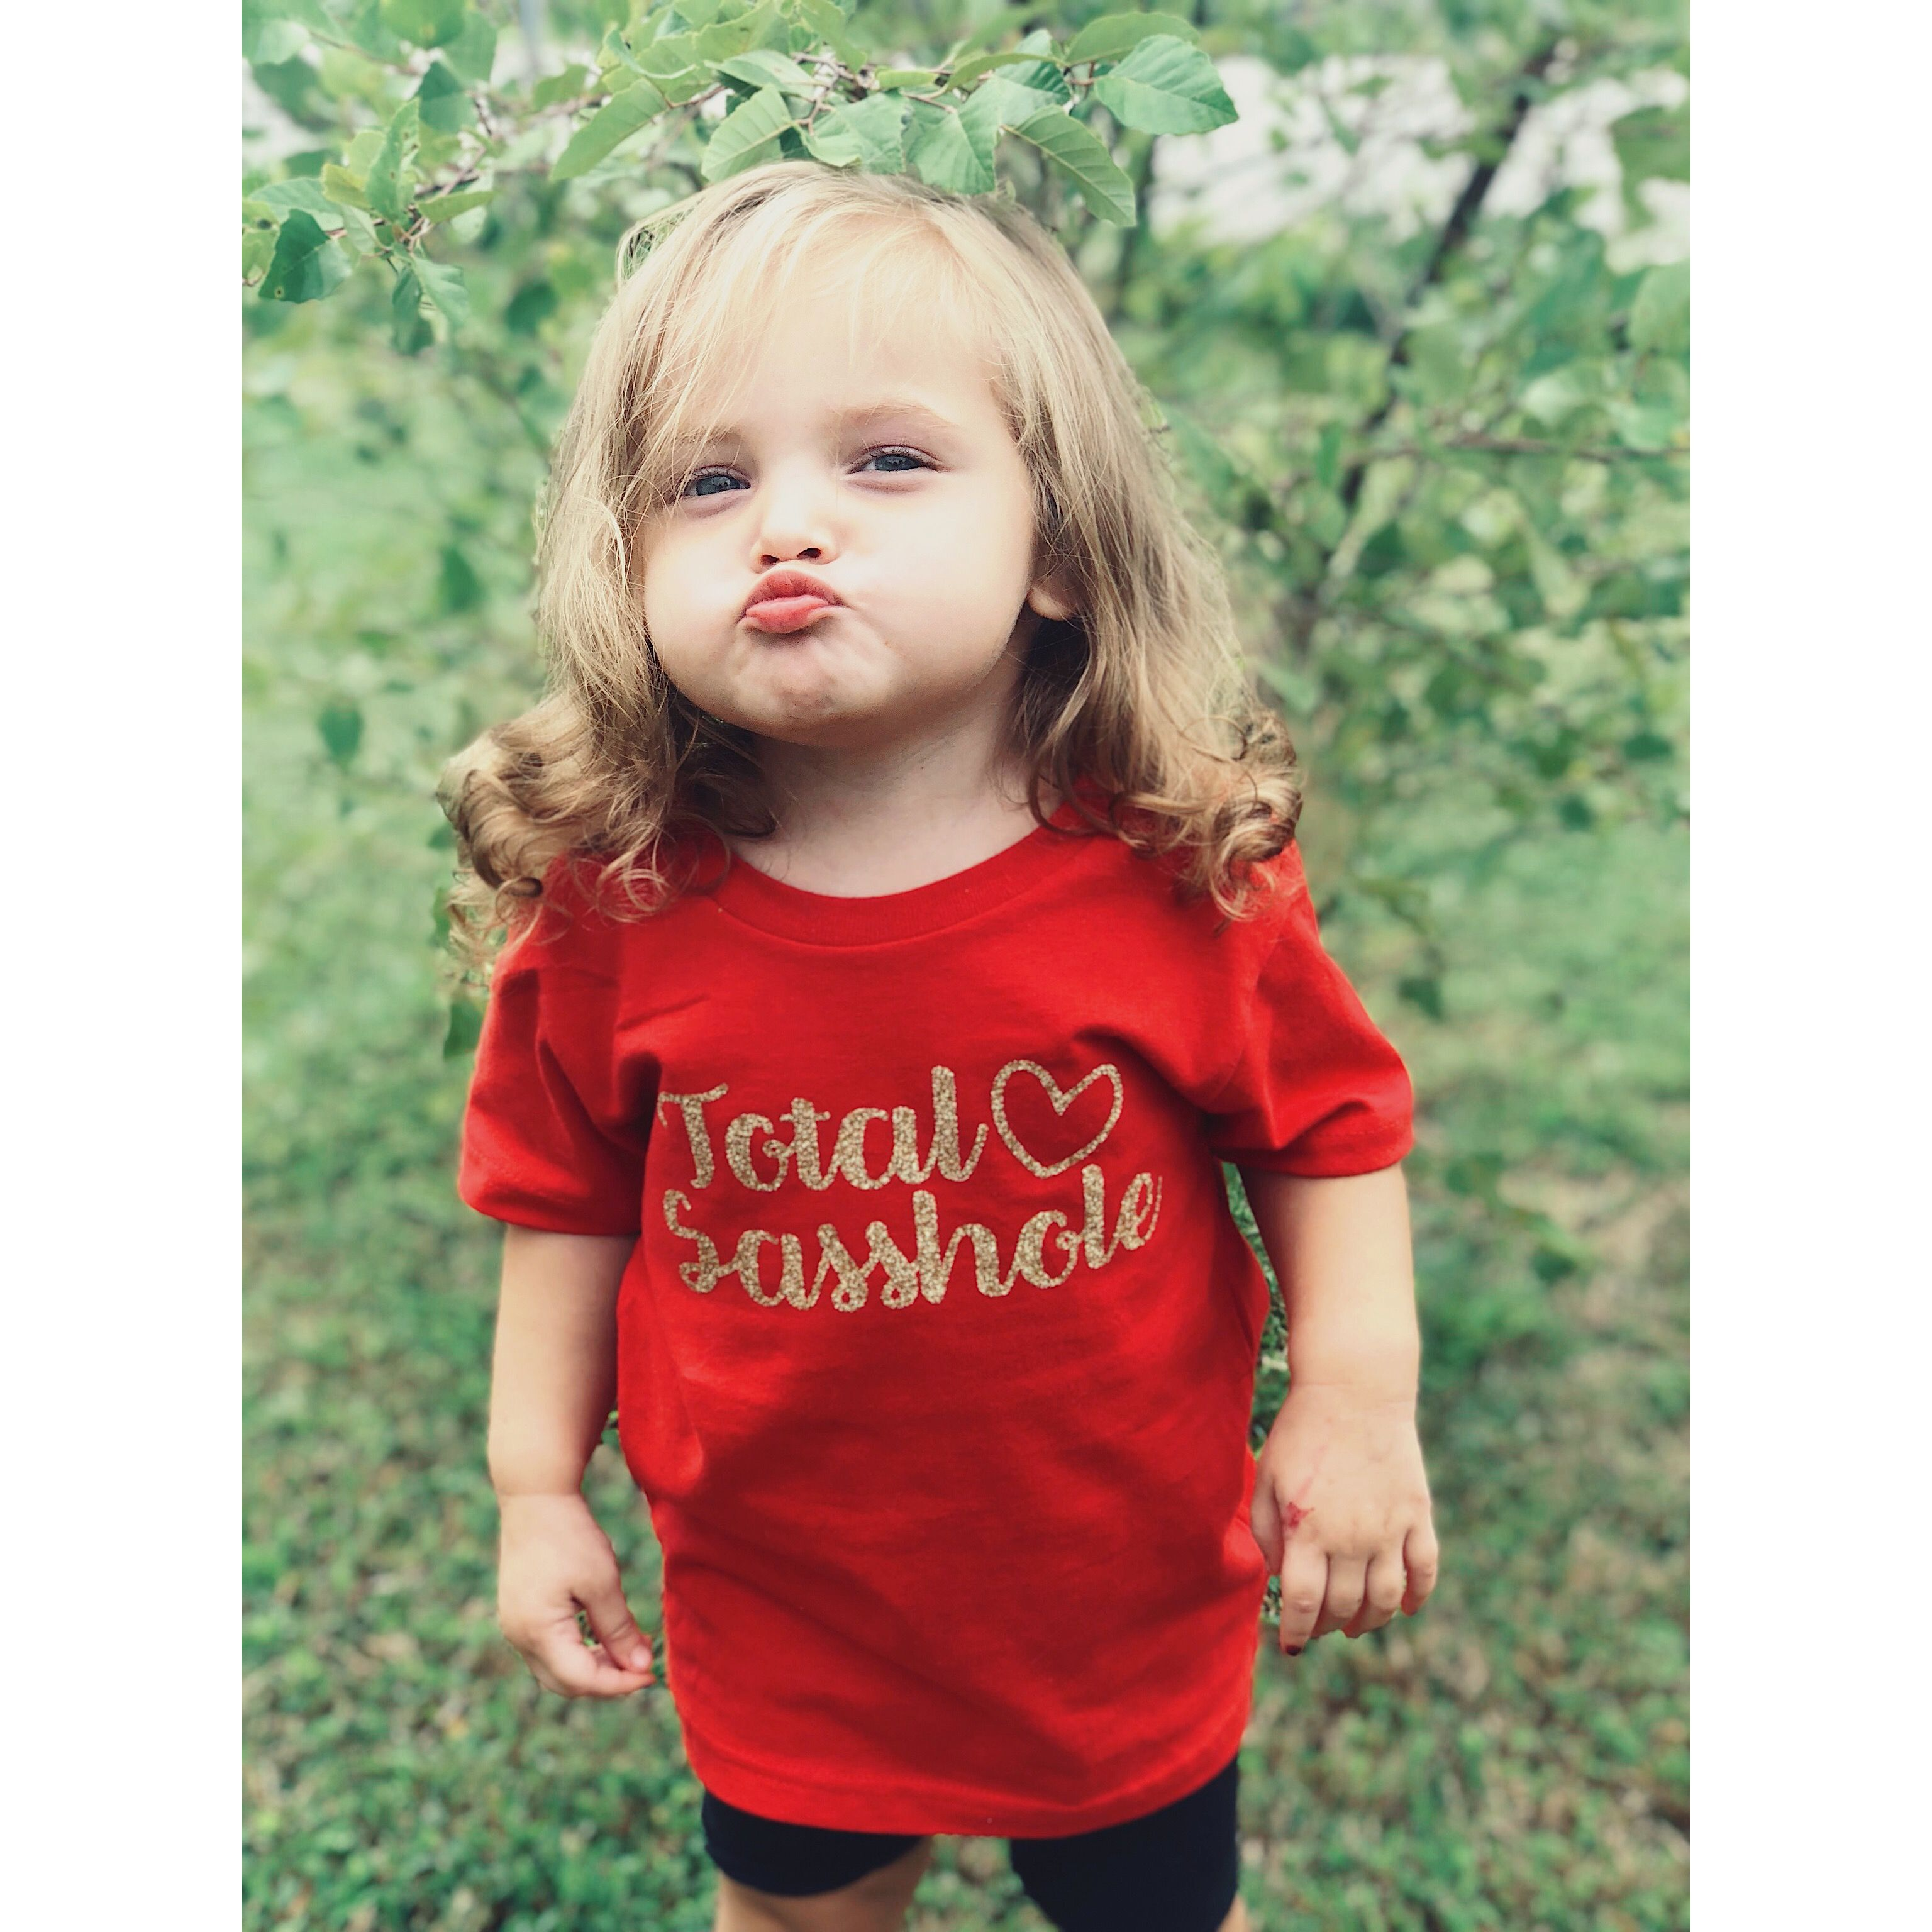 Custom Toddler T-Shirt Absolutely Country of Sweetness Cute Funny Humor Cotton